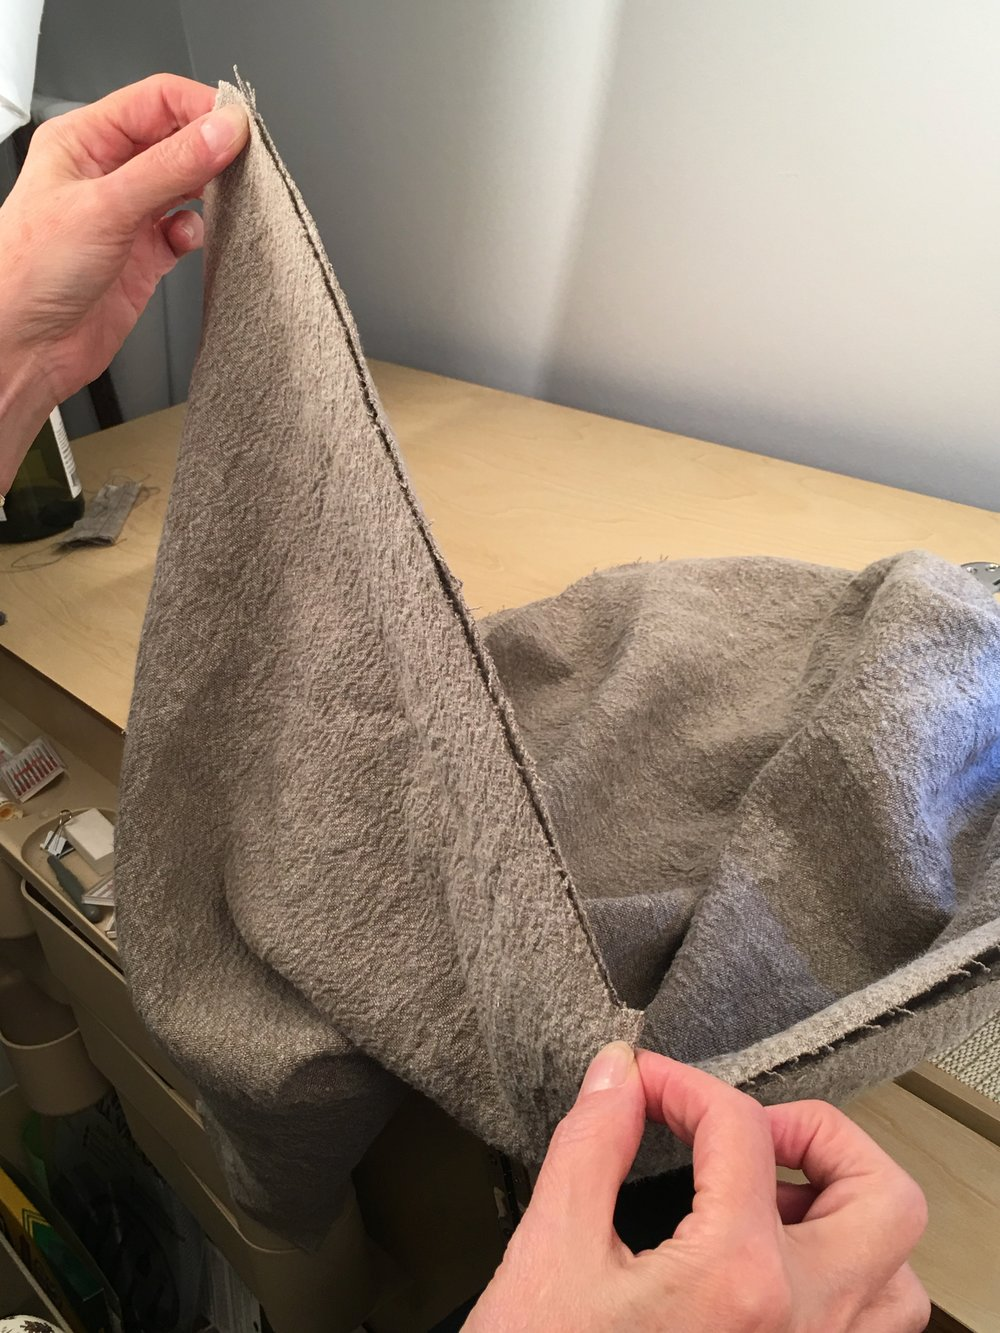 Make sure hem edges are even, and underarm seams are lined up. Pin if necessary.